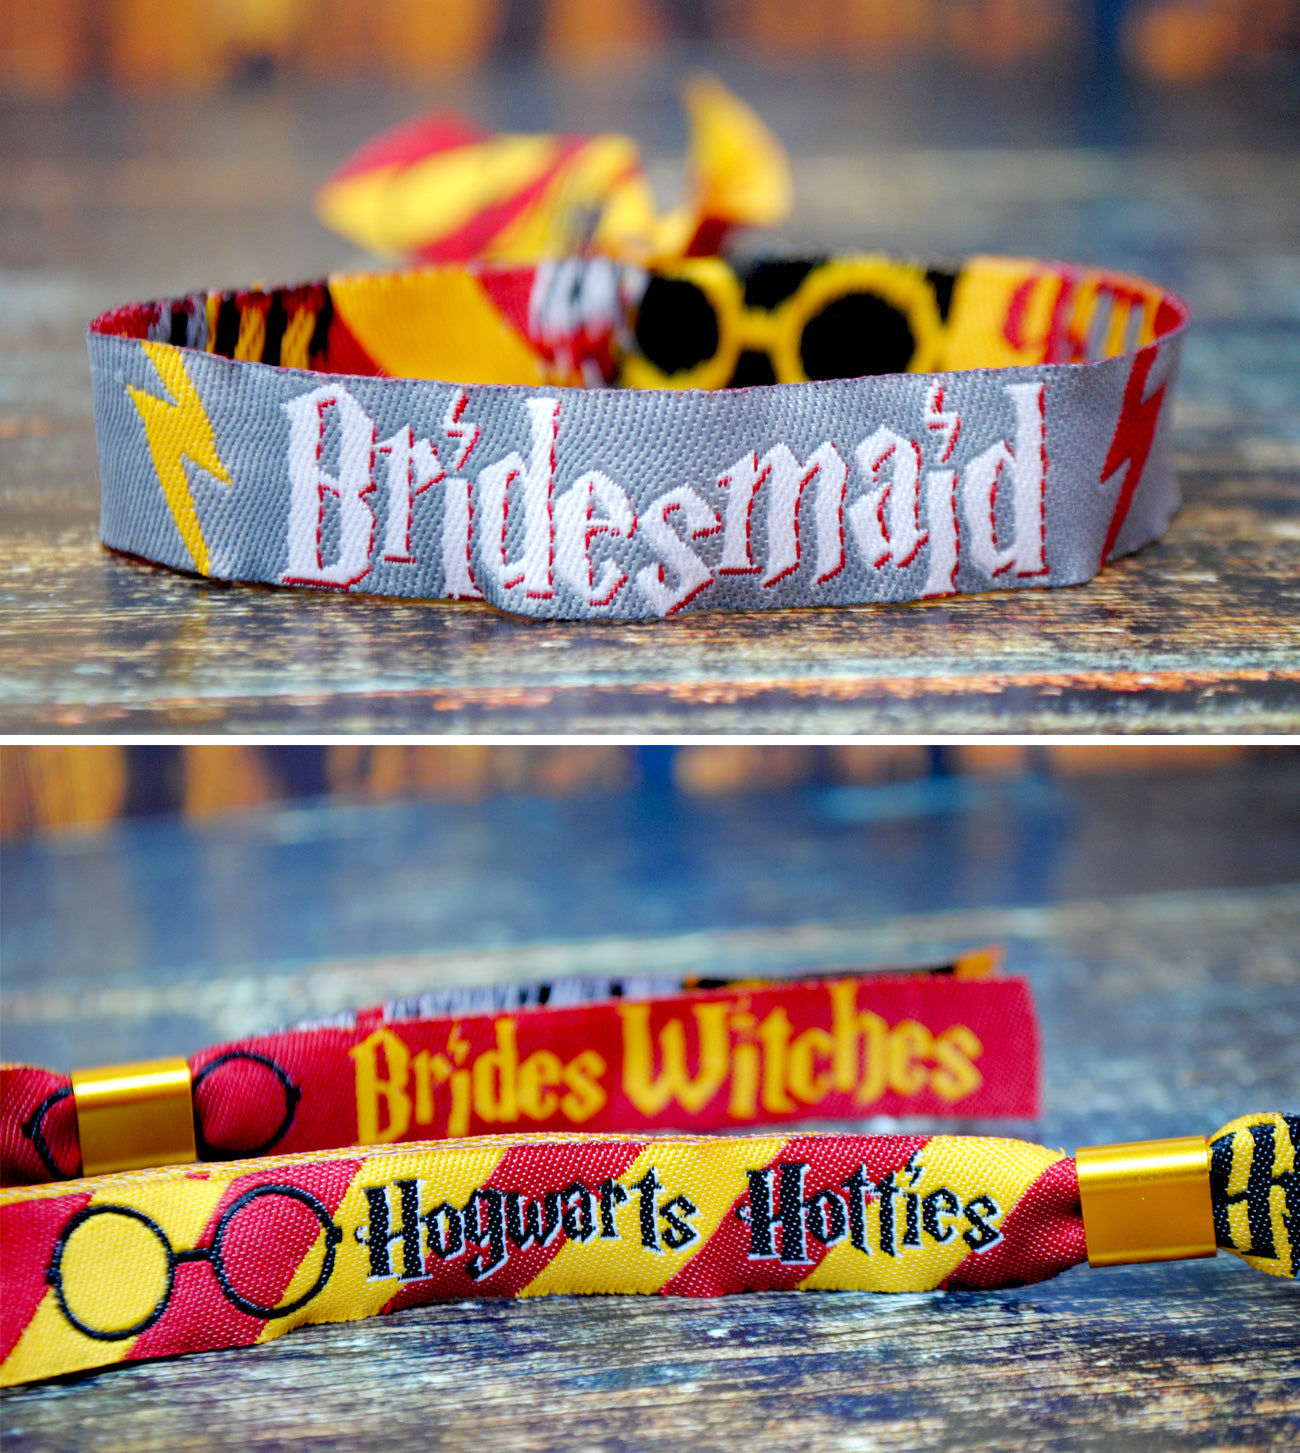 hogwarts hotties harry potter bridesmaid wristband hen party